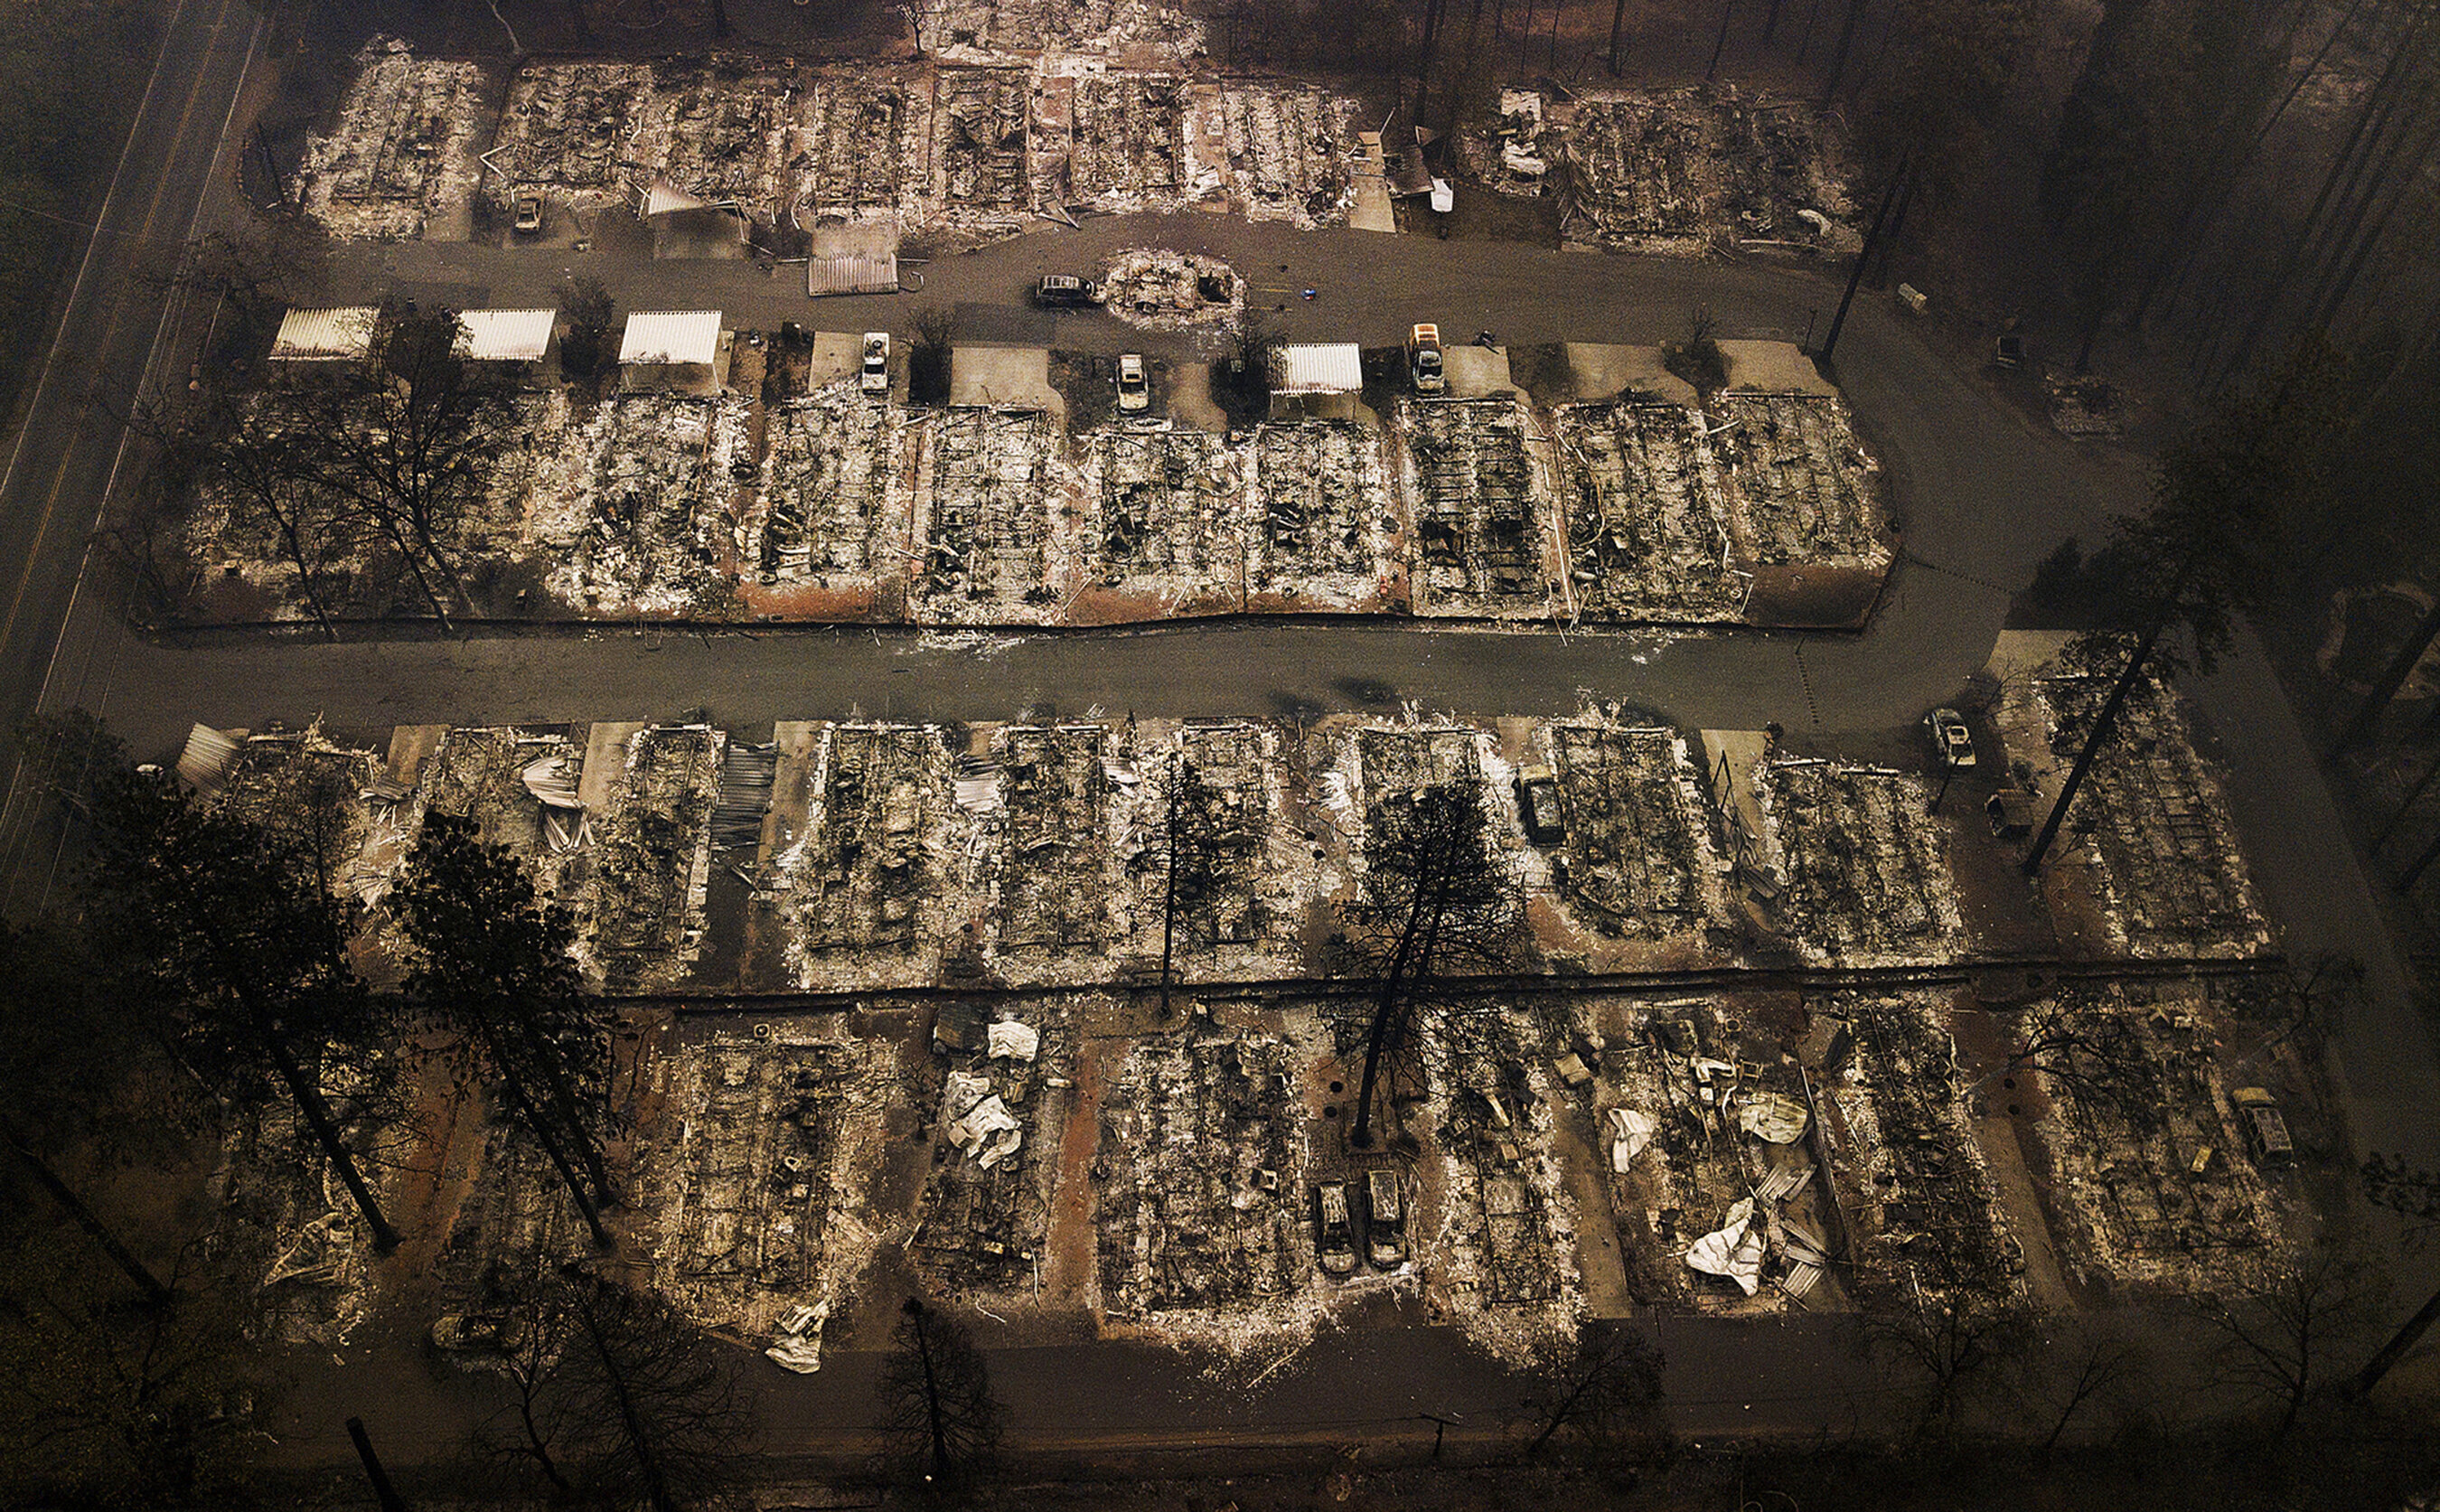 The remains of homes leveled by the wildfire last November in Paradise, California.